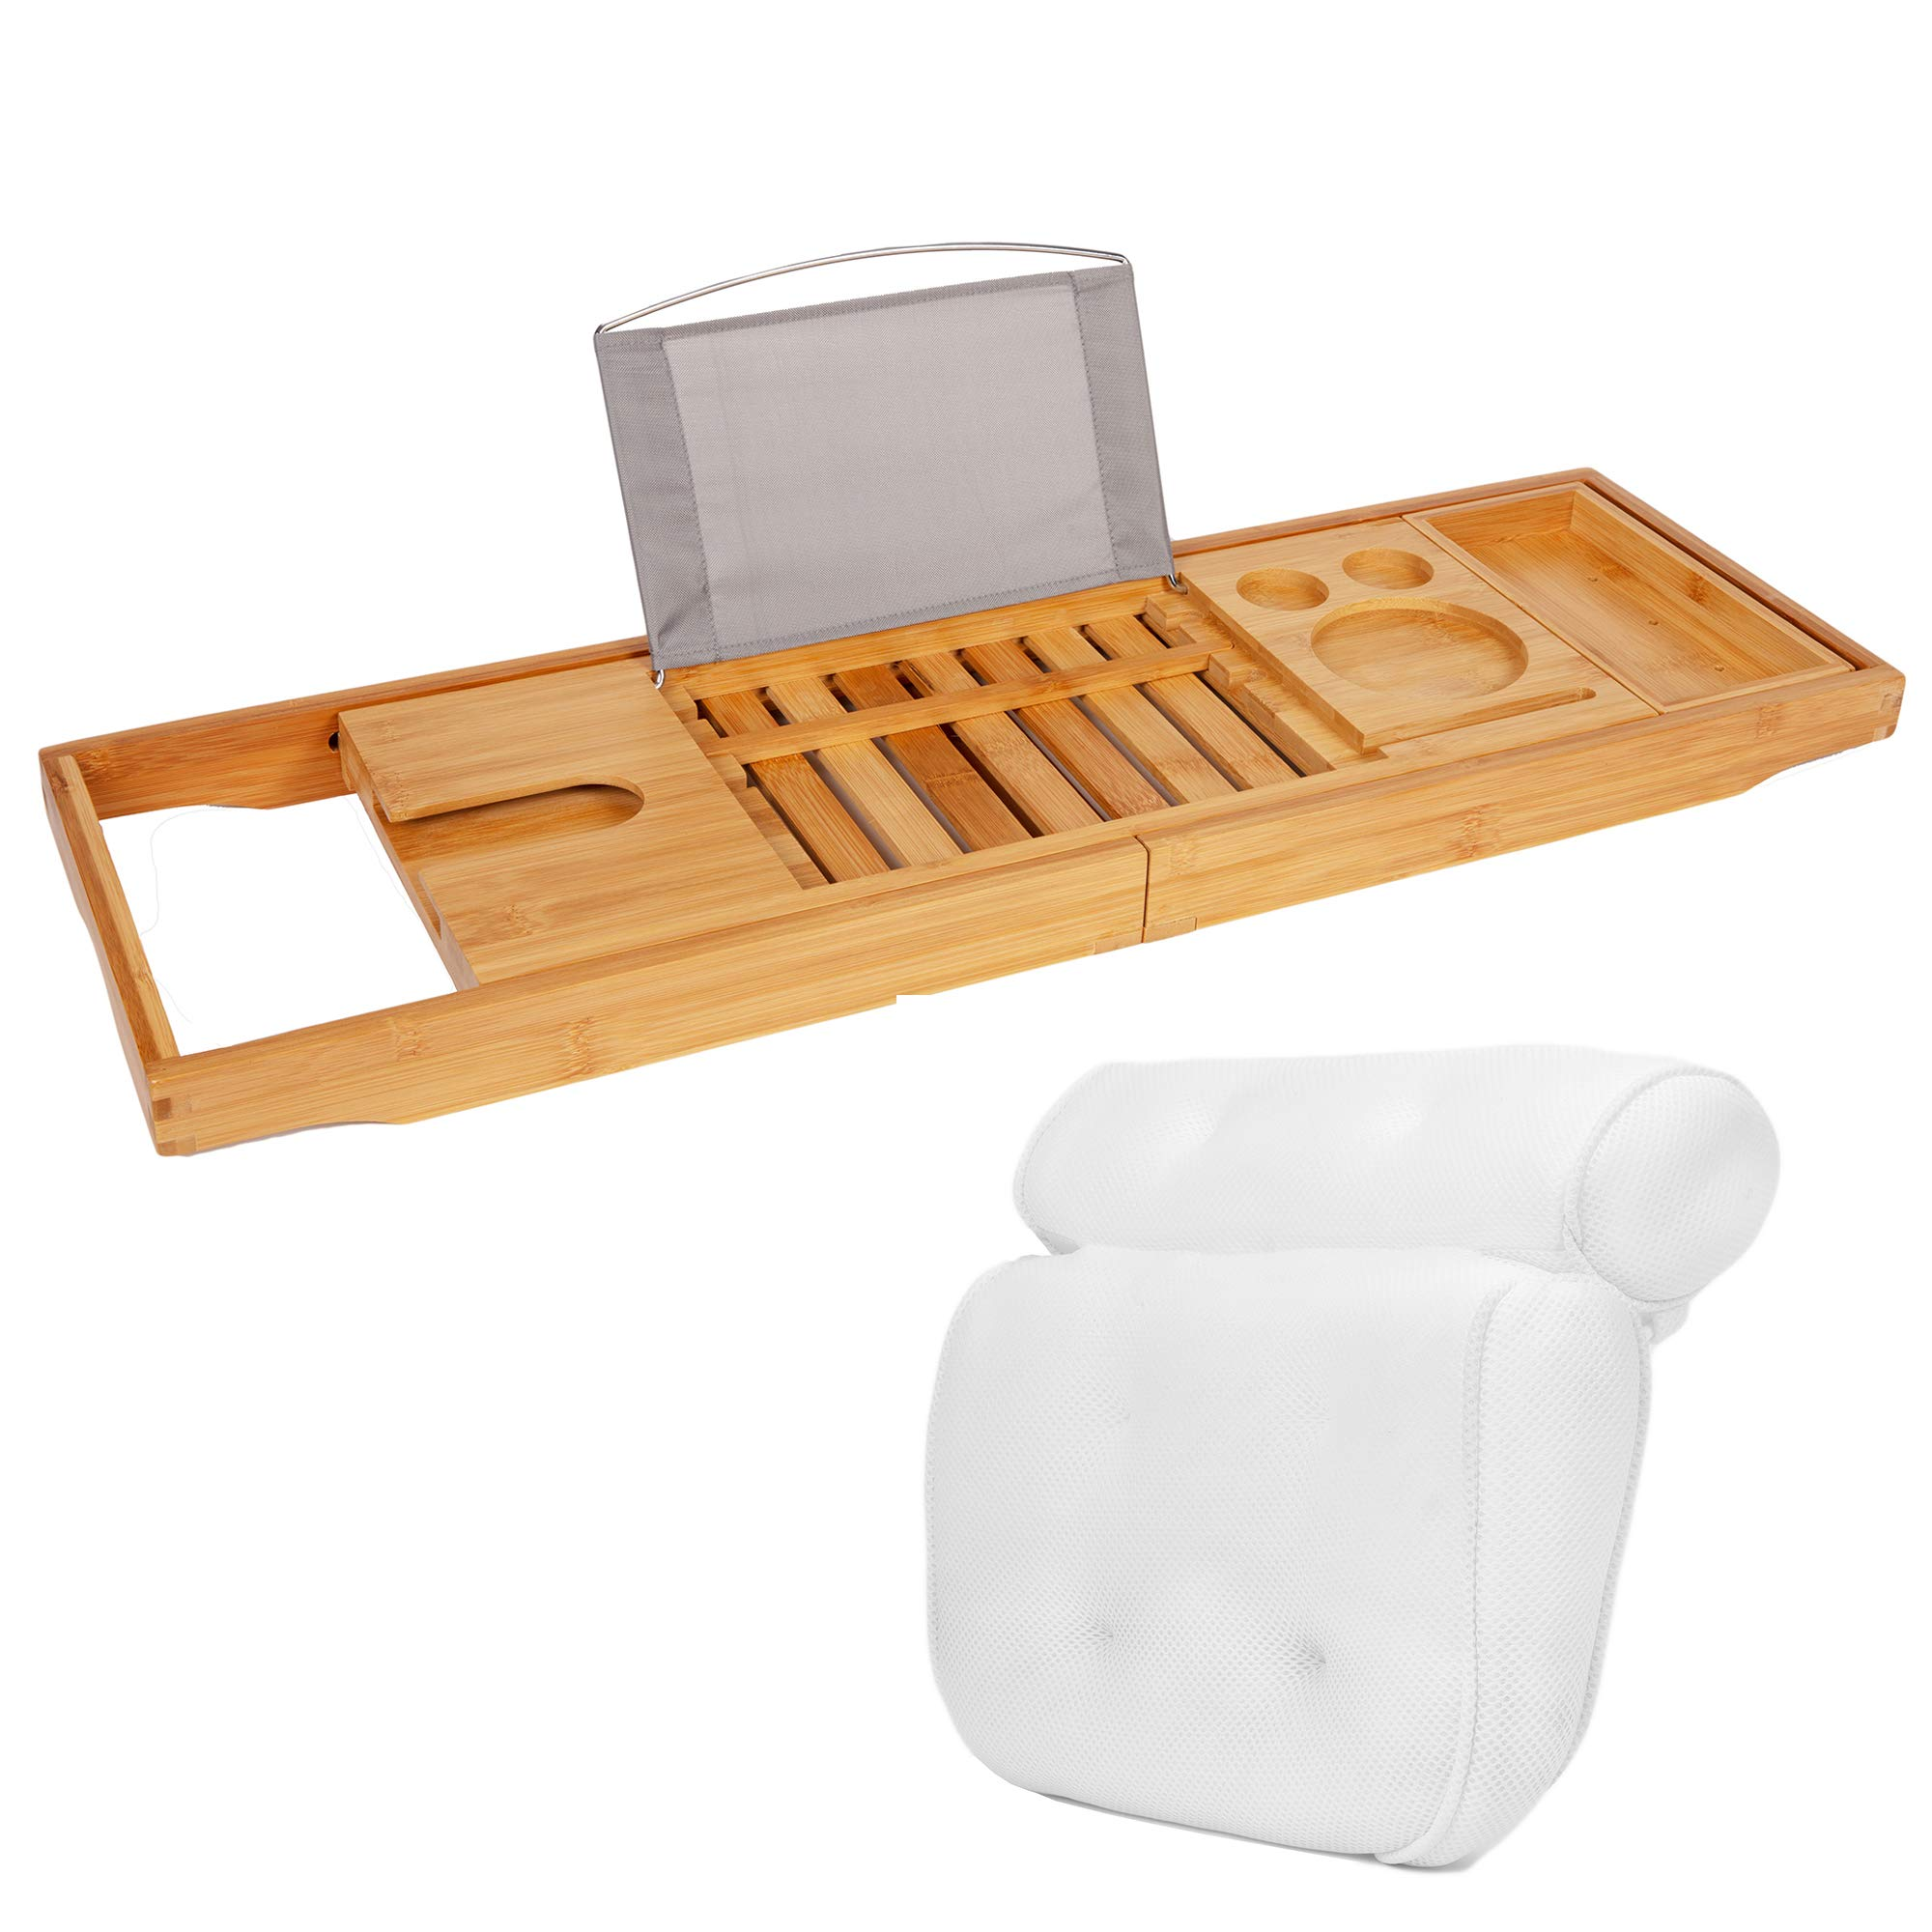 TRIXES Premium Bamboo Bath Caddy and HQ Luxury Bath Pillow Headrest - 2-in-1 - Spa Relaxation Experience for Bathrooms - Wine Holder - Book Stand Rack Phone Slot - Candles - Side Tray -Tablet Stand